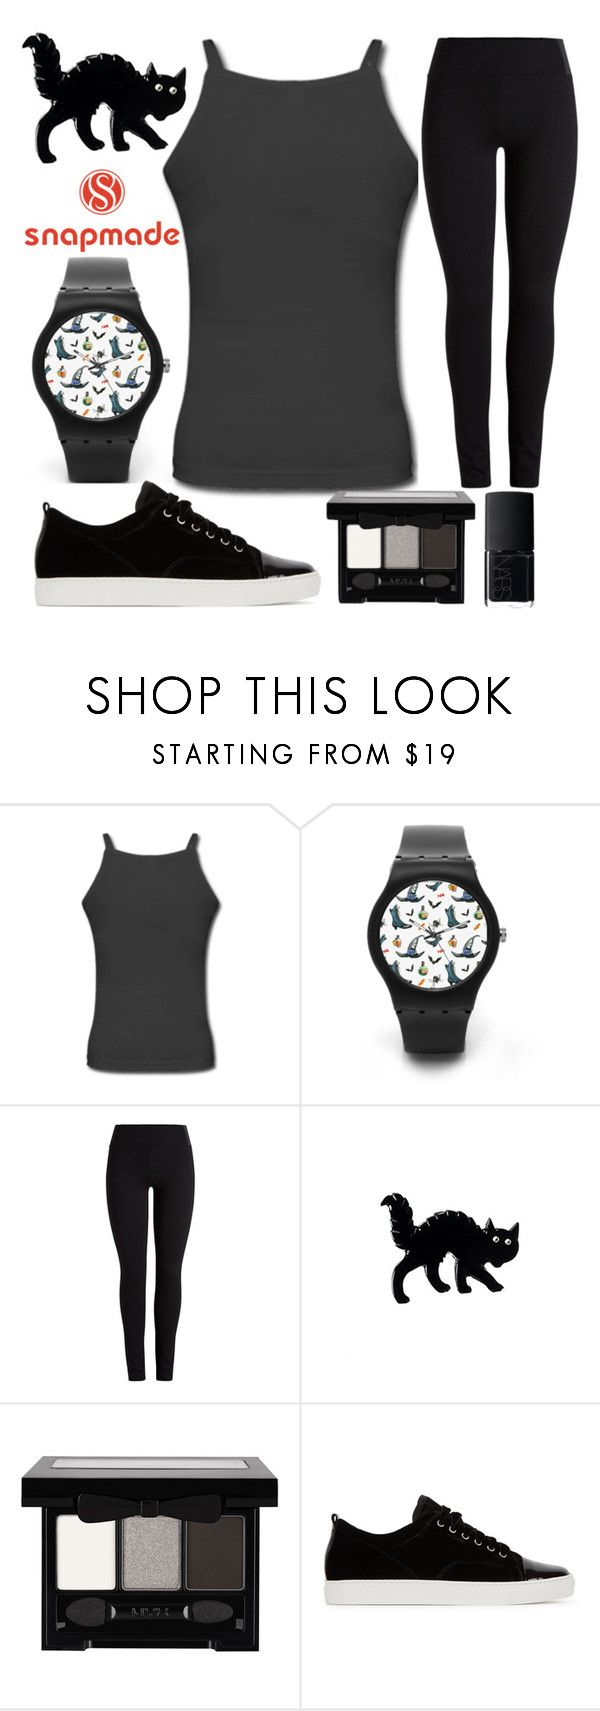 """""""snapmade"""" by j-n-a ❤ liked on Polyvore featuring NYX, Lanvin and NARS Cosmetics"""